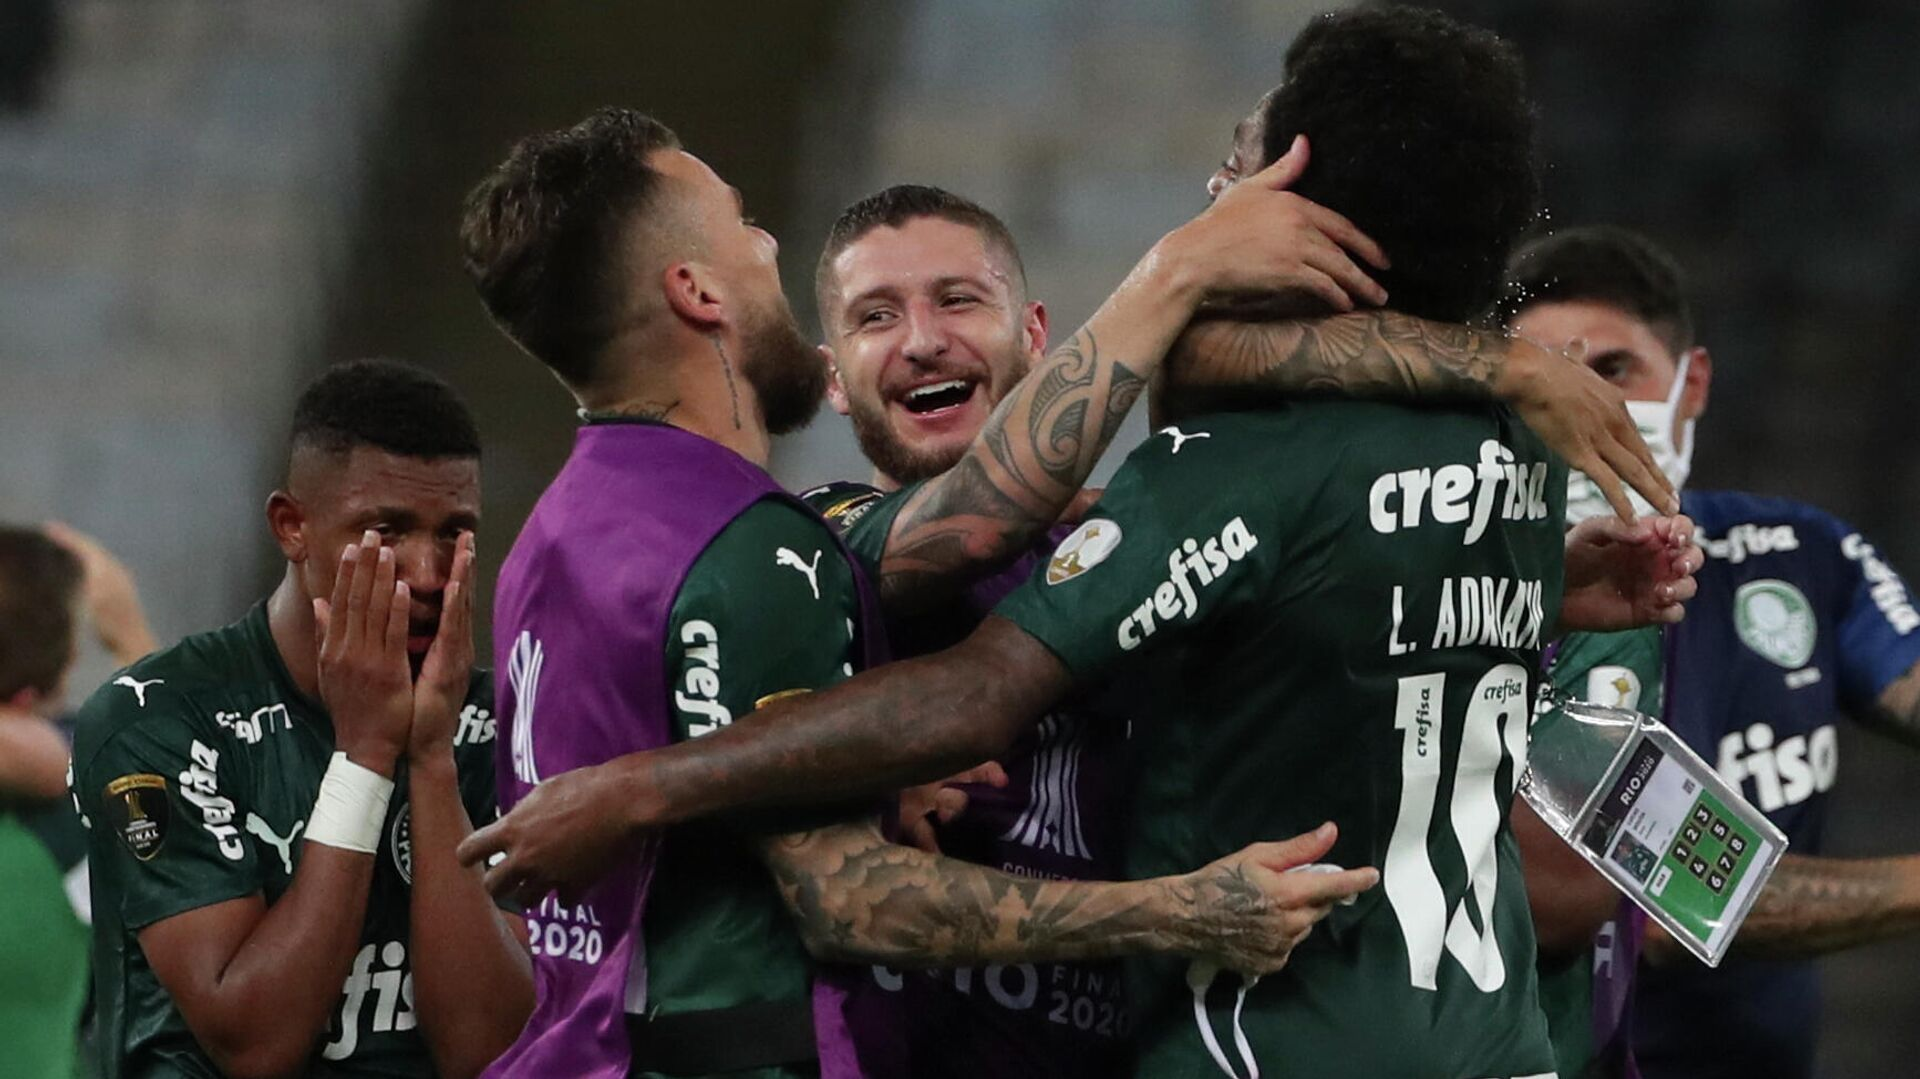 Players of Palmeiras celebrate after winning the Copa Libertadores football tournament by defeating Santos in the all-Brazilian final match at Maracana Stadium in Rio de Janeiro, Brazil, on January 30, 2021. (Photo by RICARDO MORAES / POOL / AFP) - РИА Новости, 1920, 31.01.2021